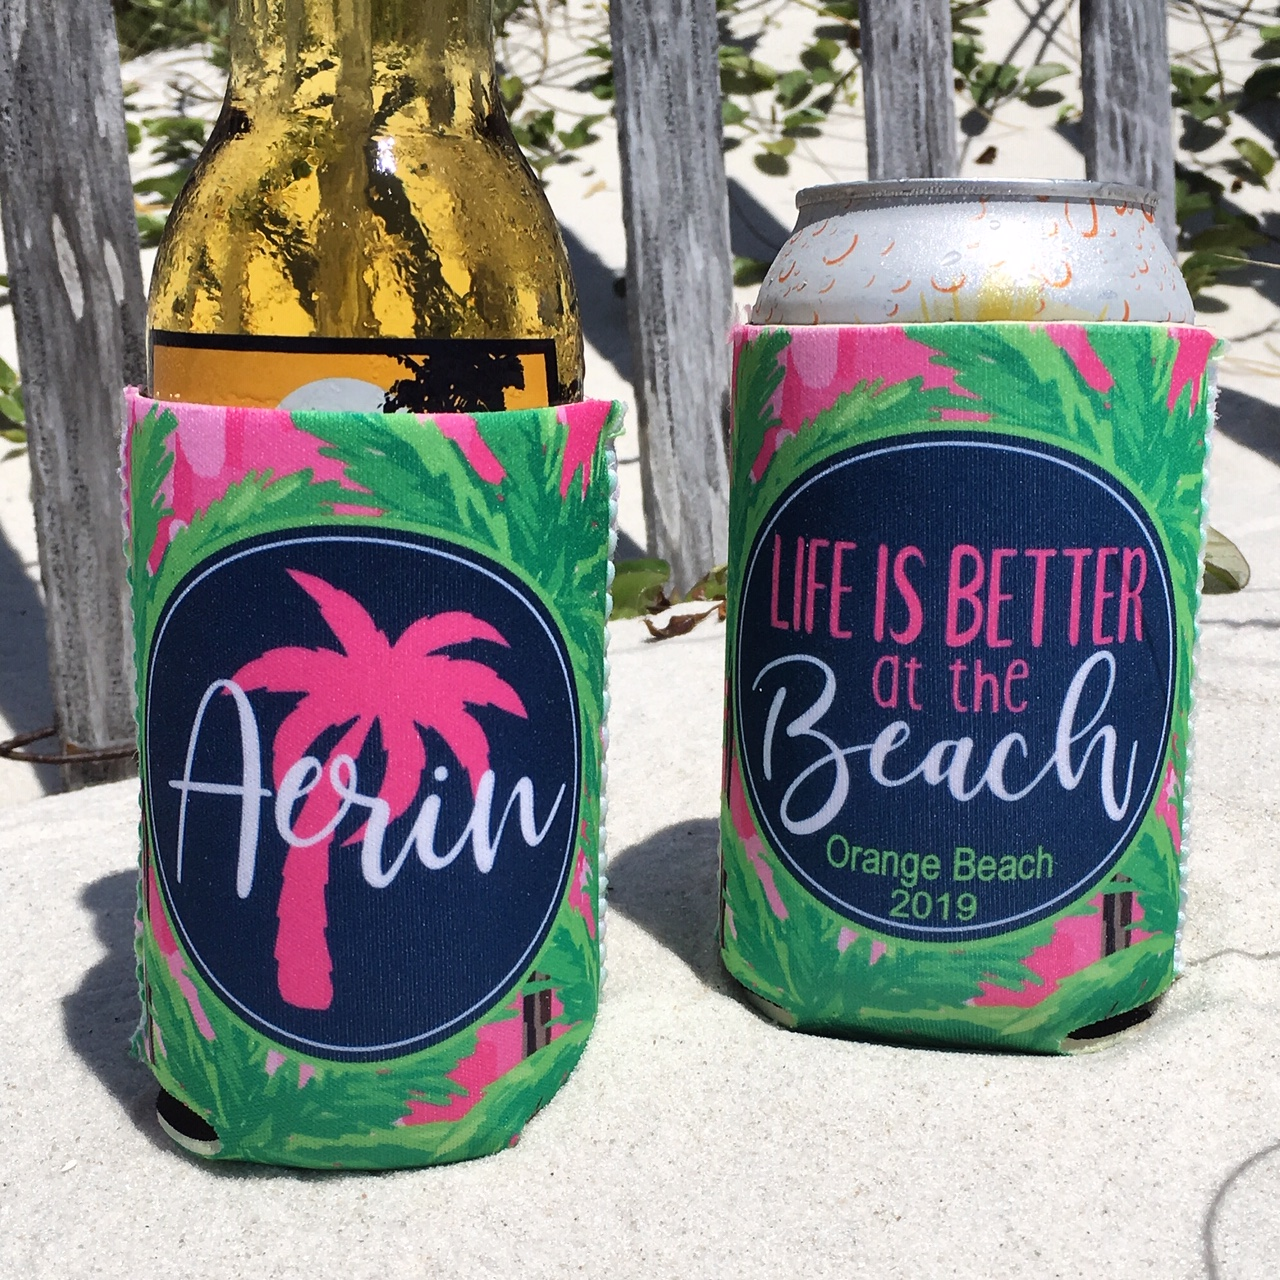 Beach Vacation Koozies or coolies - Life is Better at the Beach - pink palm trees